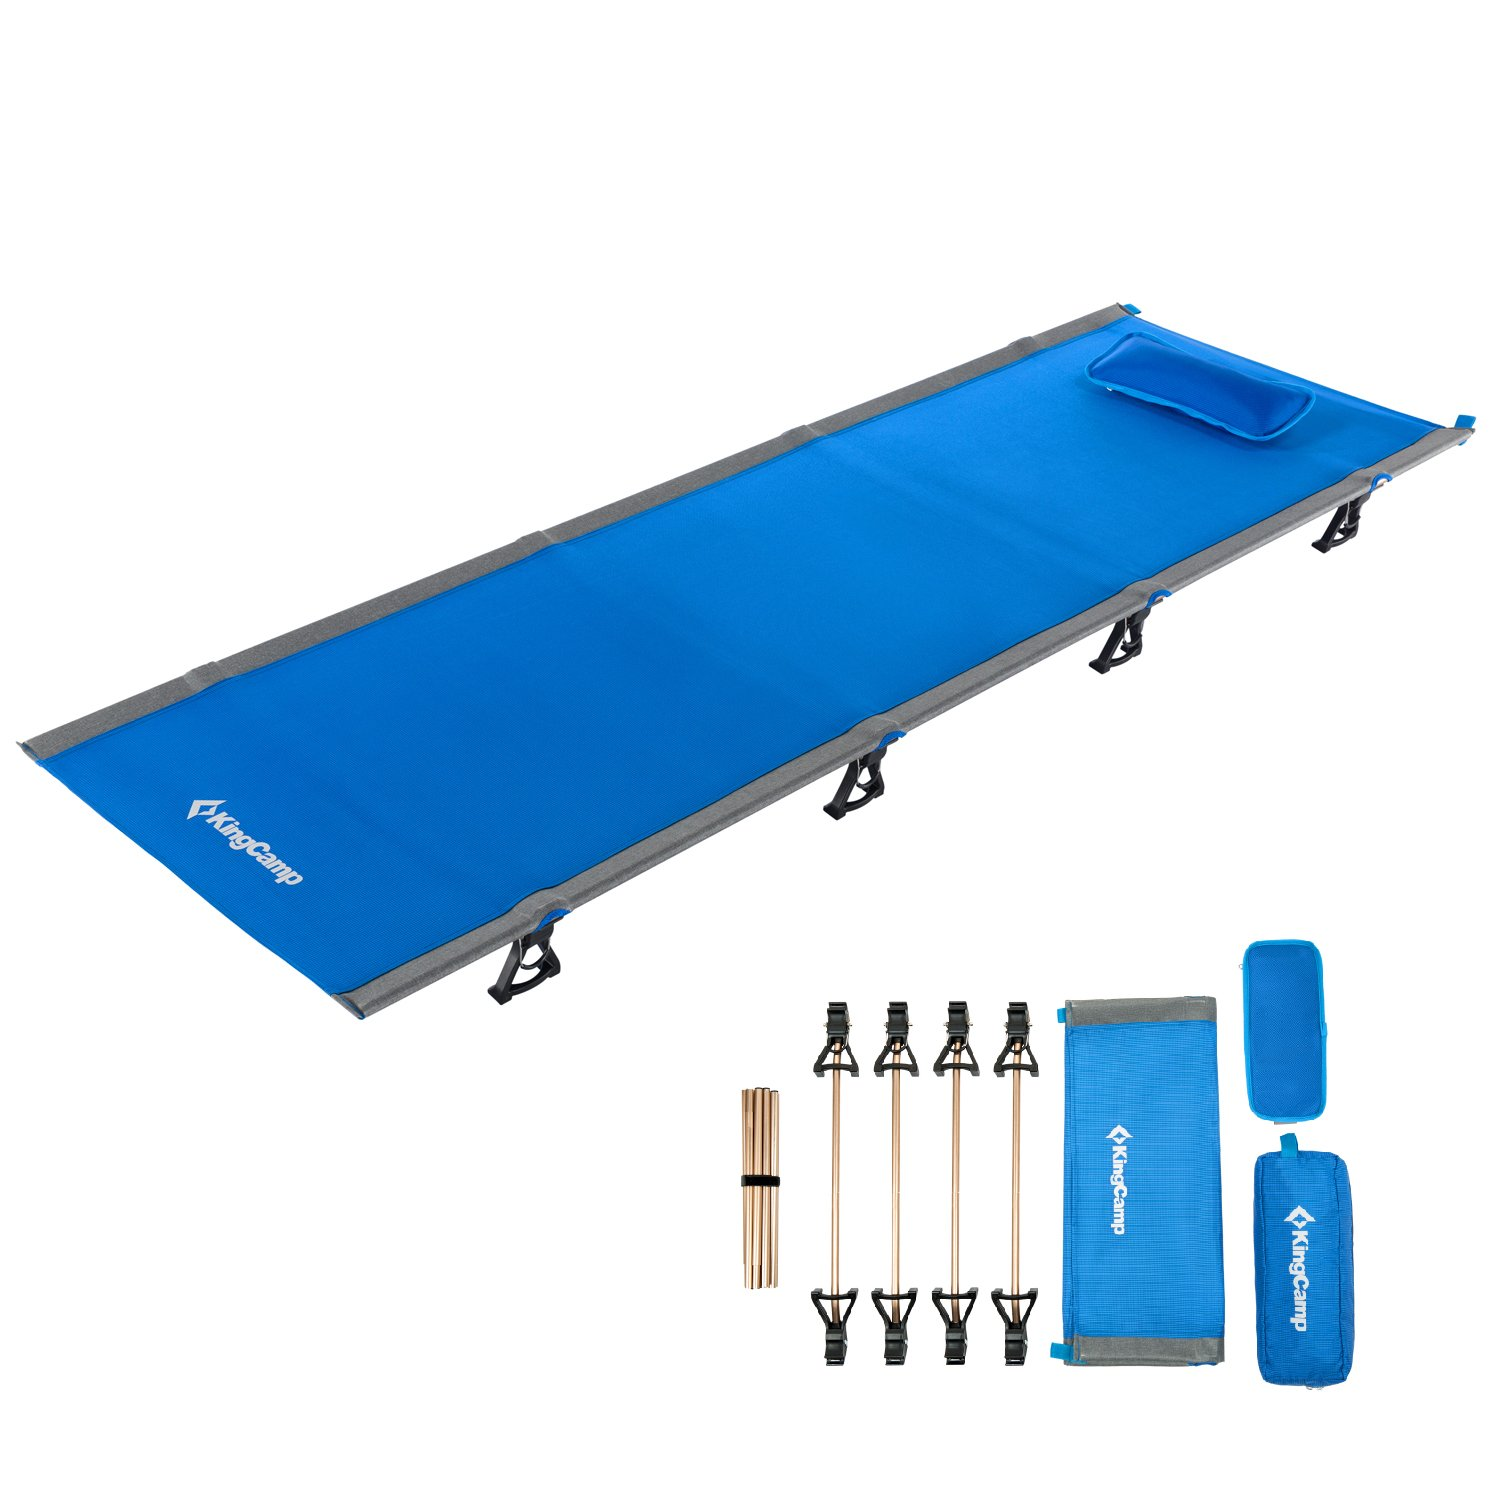 2 kg //4.4 Pounds KingCamp Ultralight Compact Folding Camping Tent Cot Bed